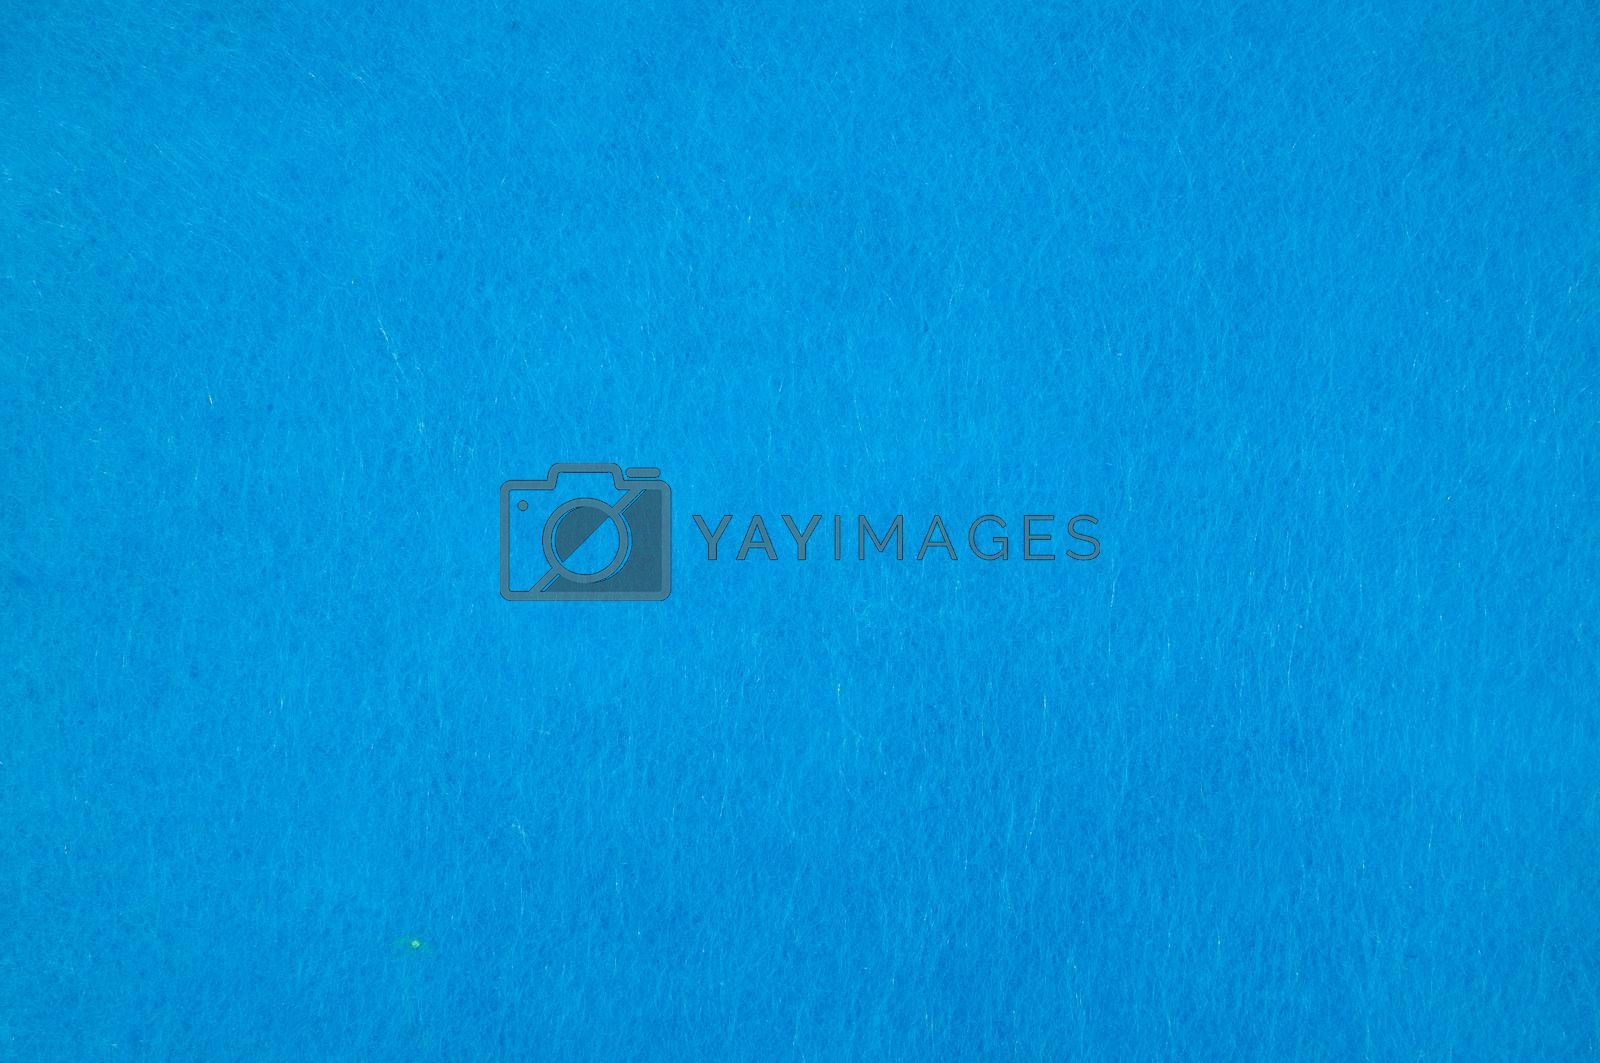 Texture background of Light Blue velvet or flannel Fabric as backdrop or wallpaper pattern for decoration